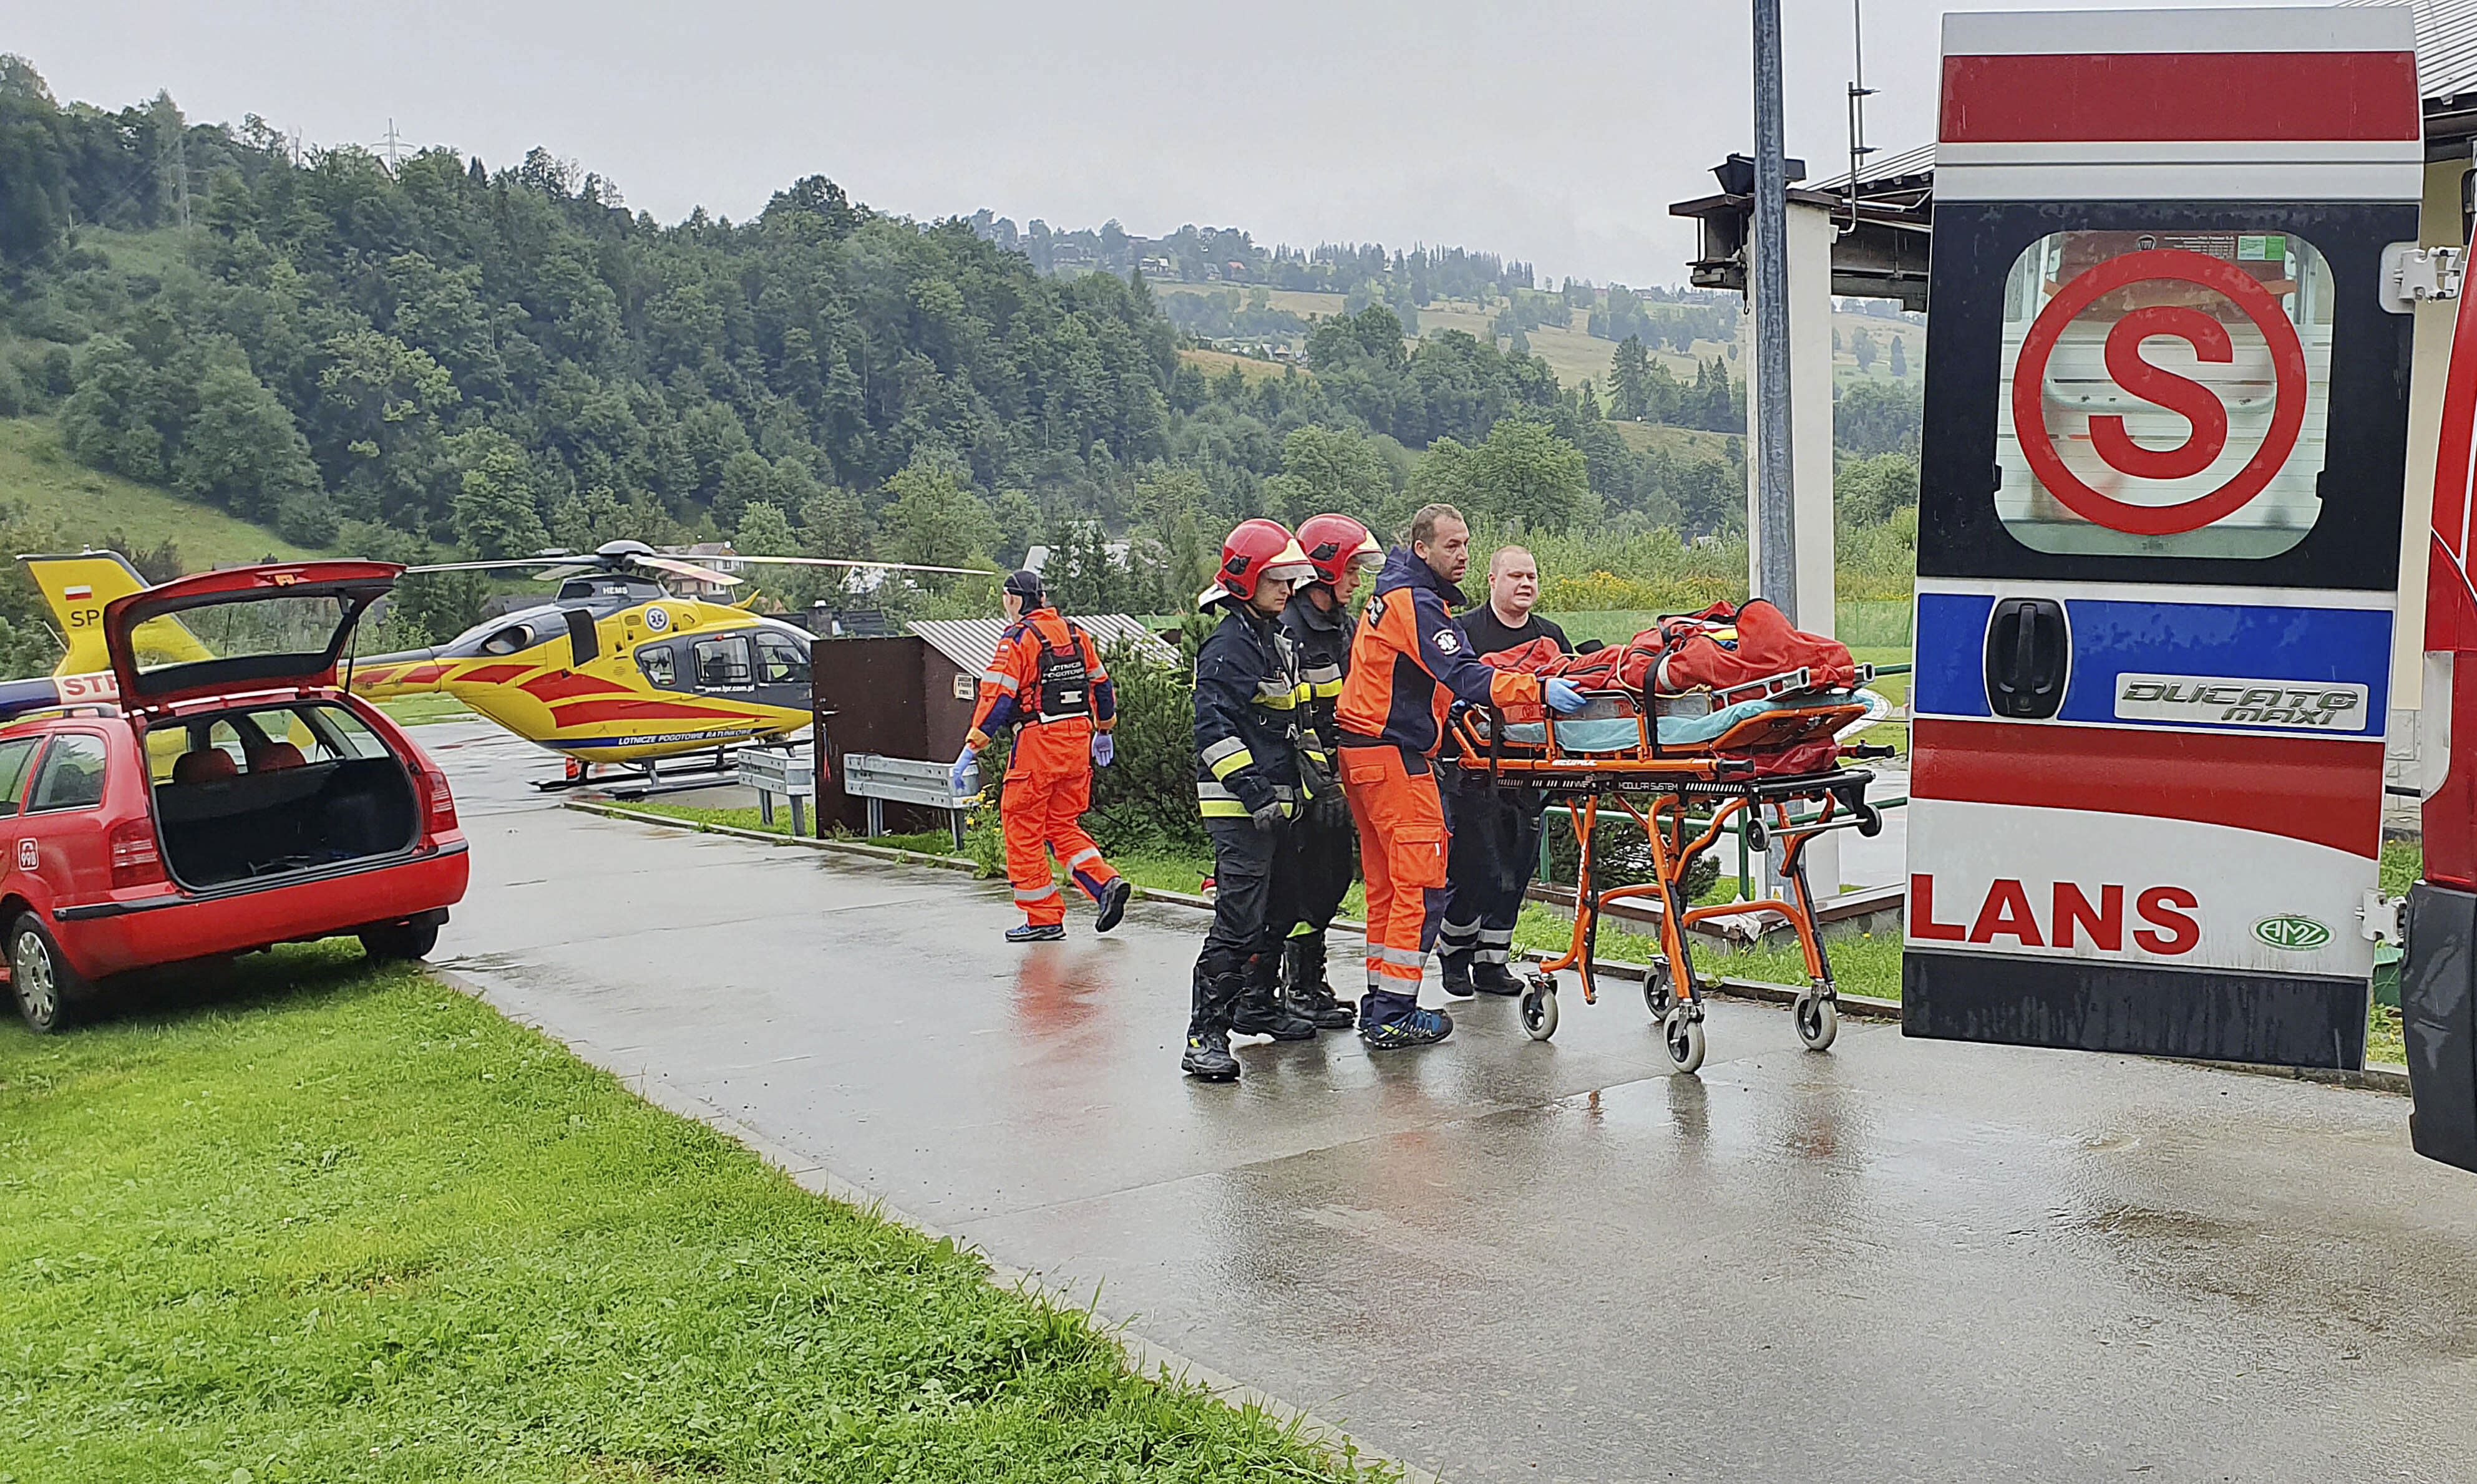 Rescue helicopter and ambulance have brought to hospital the first people injured by a lighting strike that struck in Poland's southern Tatra Mountains during a sudden thunderstorm, in Zakopane, Poland, on Thursday, Aug. 22, 2019.(AP Photo/Bartlomiej Jurecki)